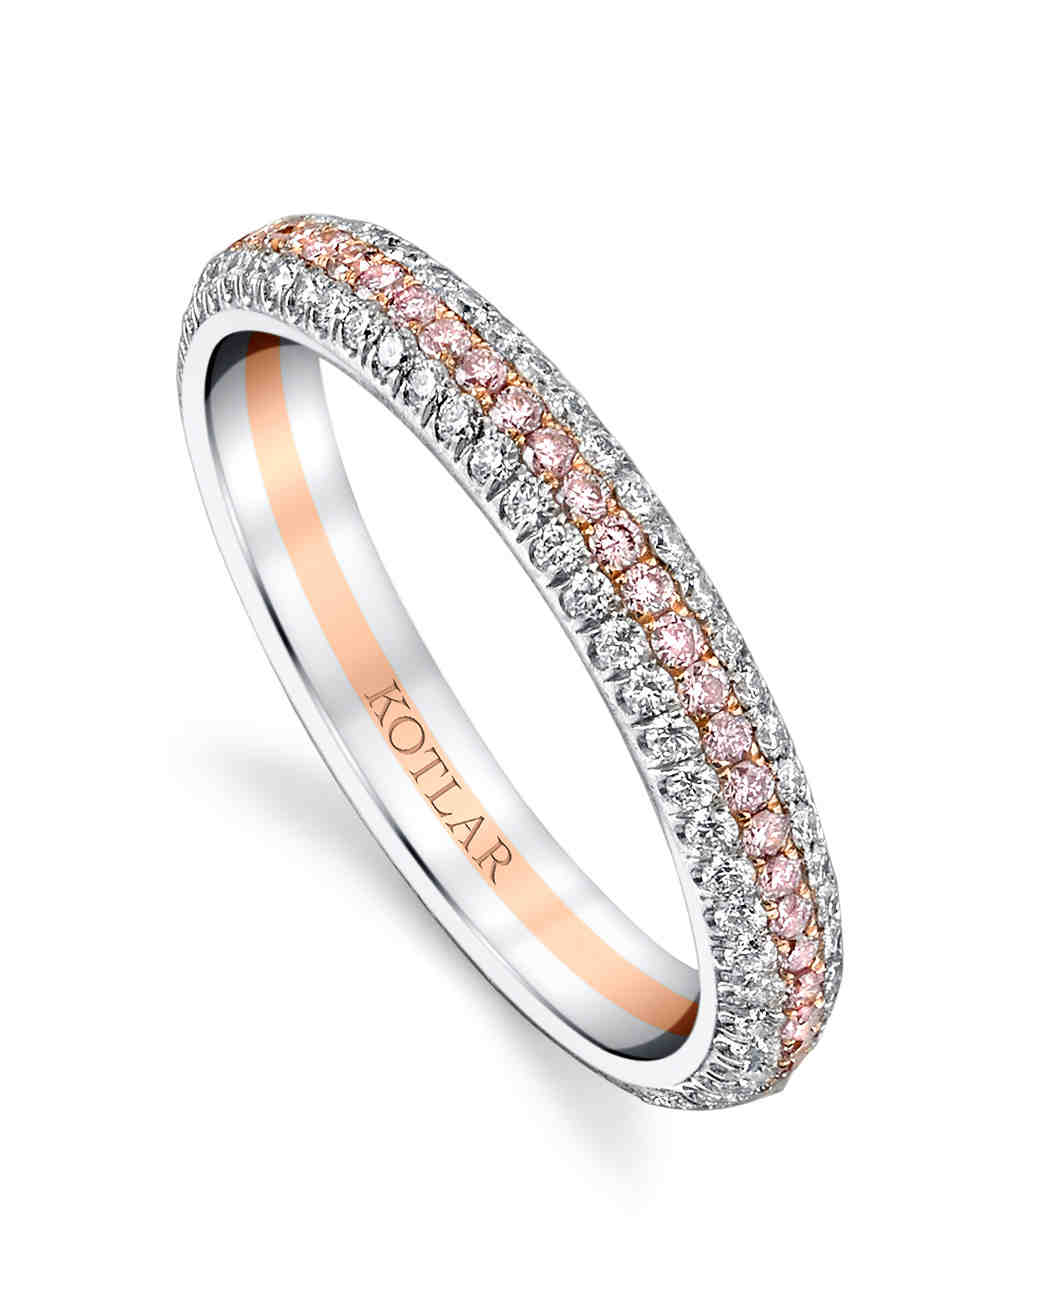 colored-engagement-rings-harry-kotlar-white-gold-pink-diamonds-0316.jpg